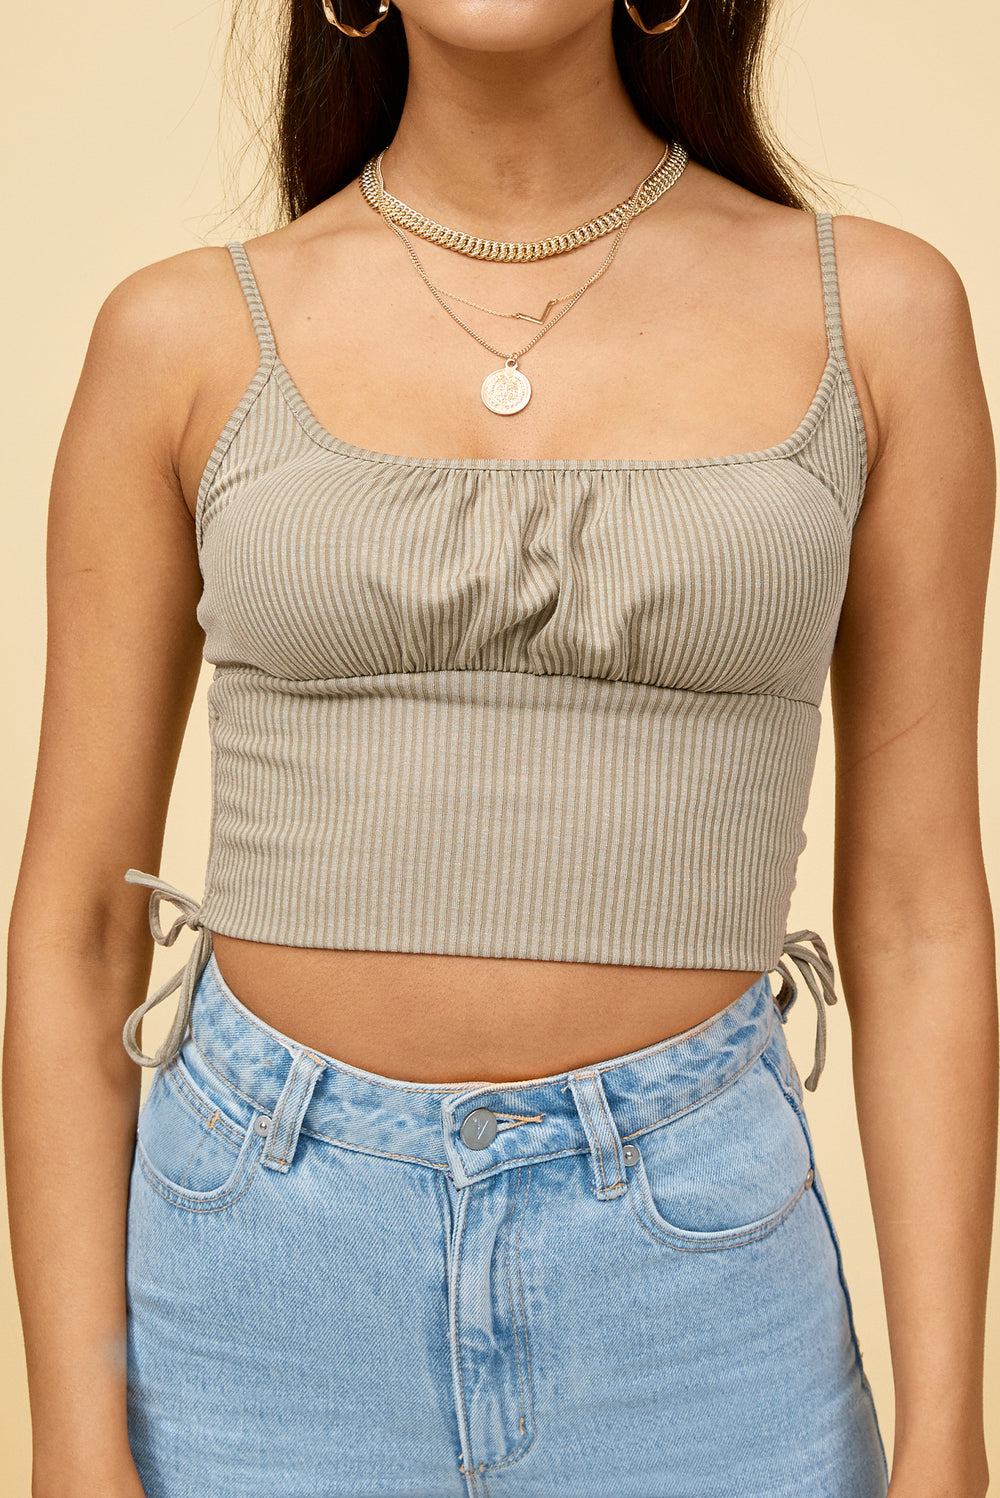 khaki crop top, khaki tank top, crop top